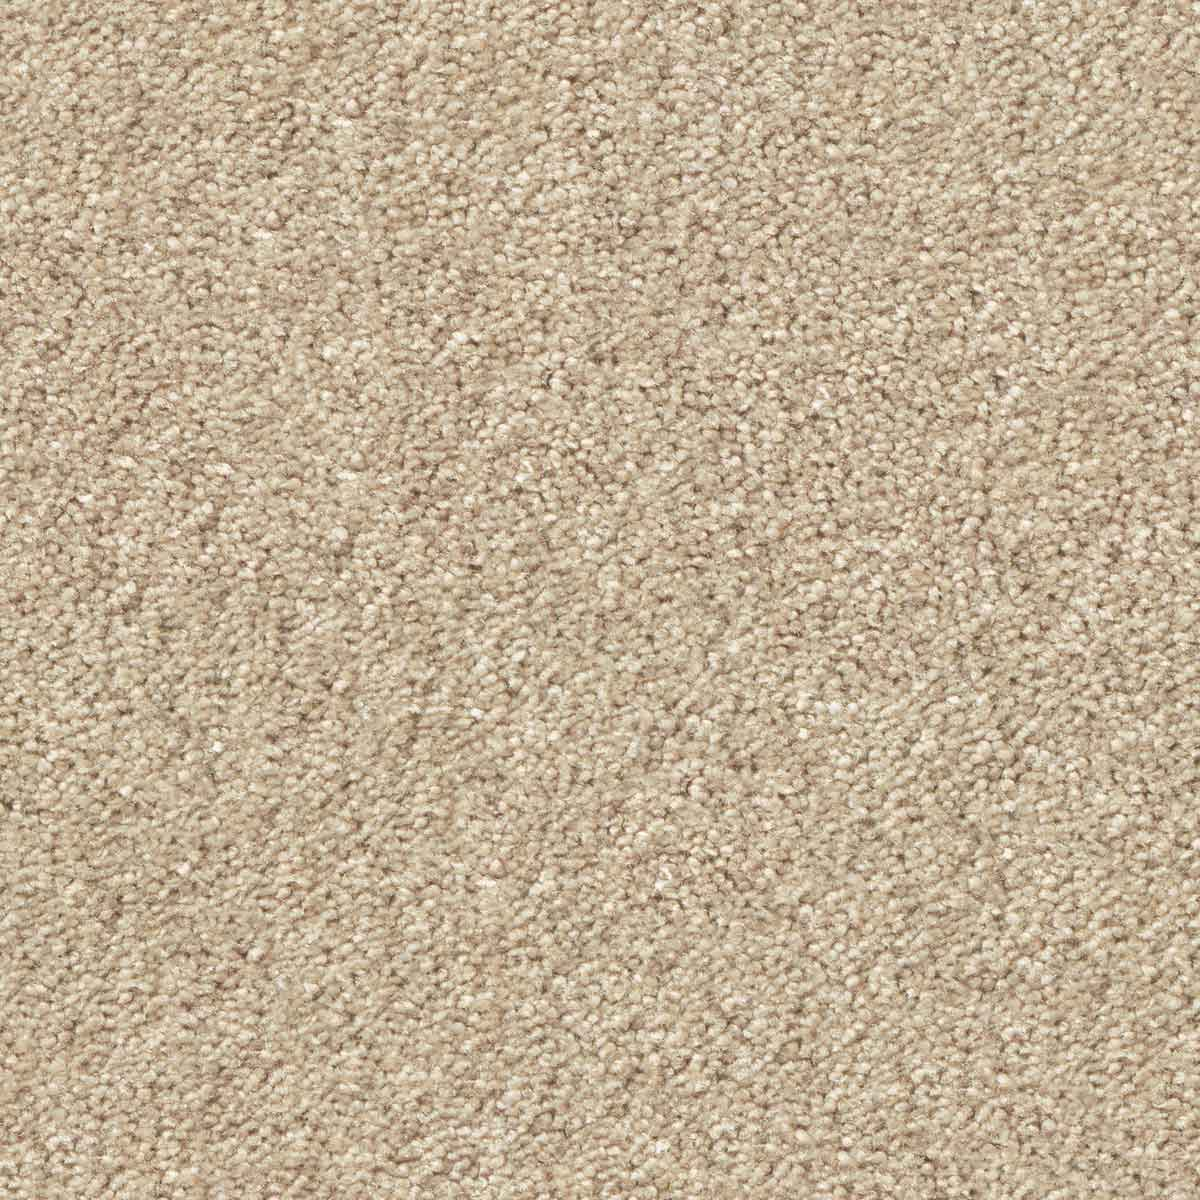 silky seal teppich marzipan 2 50 x 3 50 m object carpet. Black Bedroom Furniture Sets. Home Design Ideas